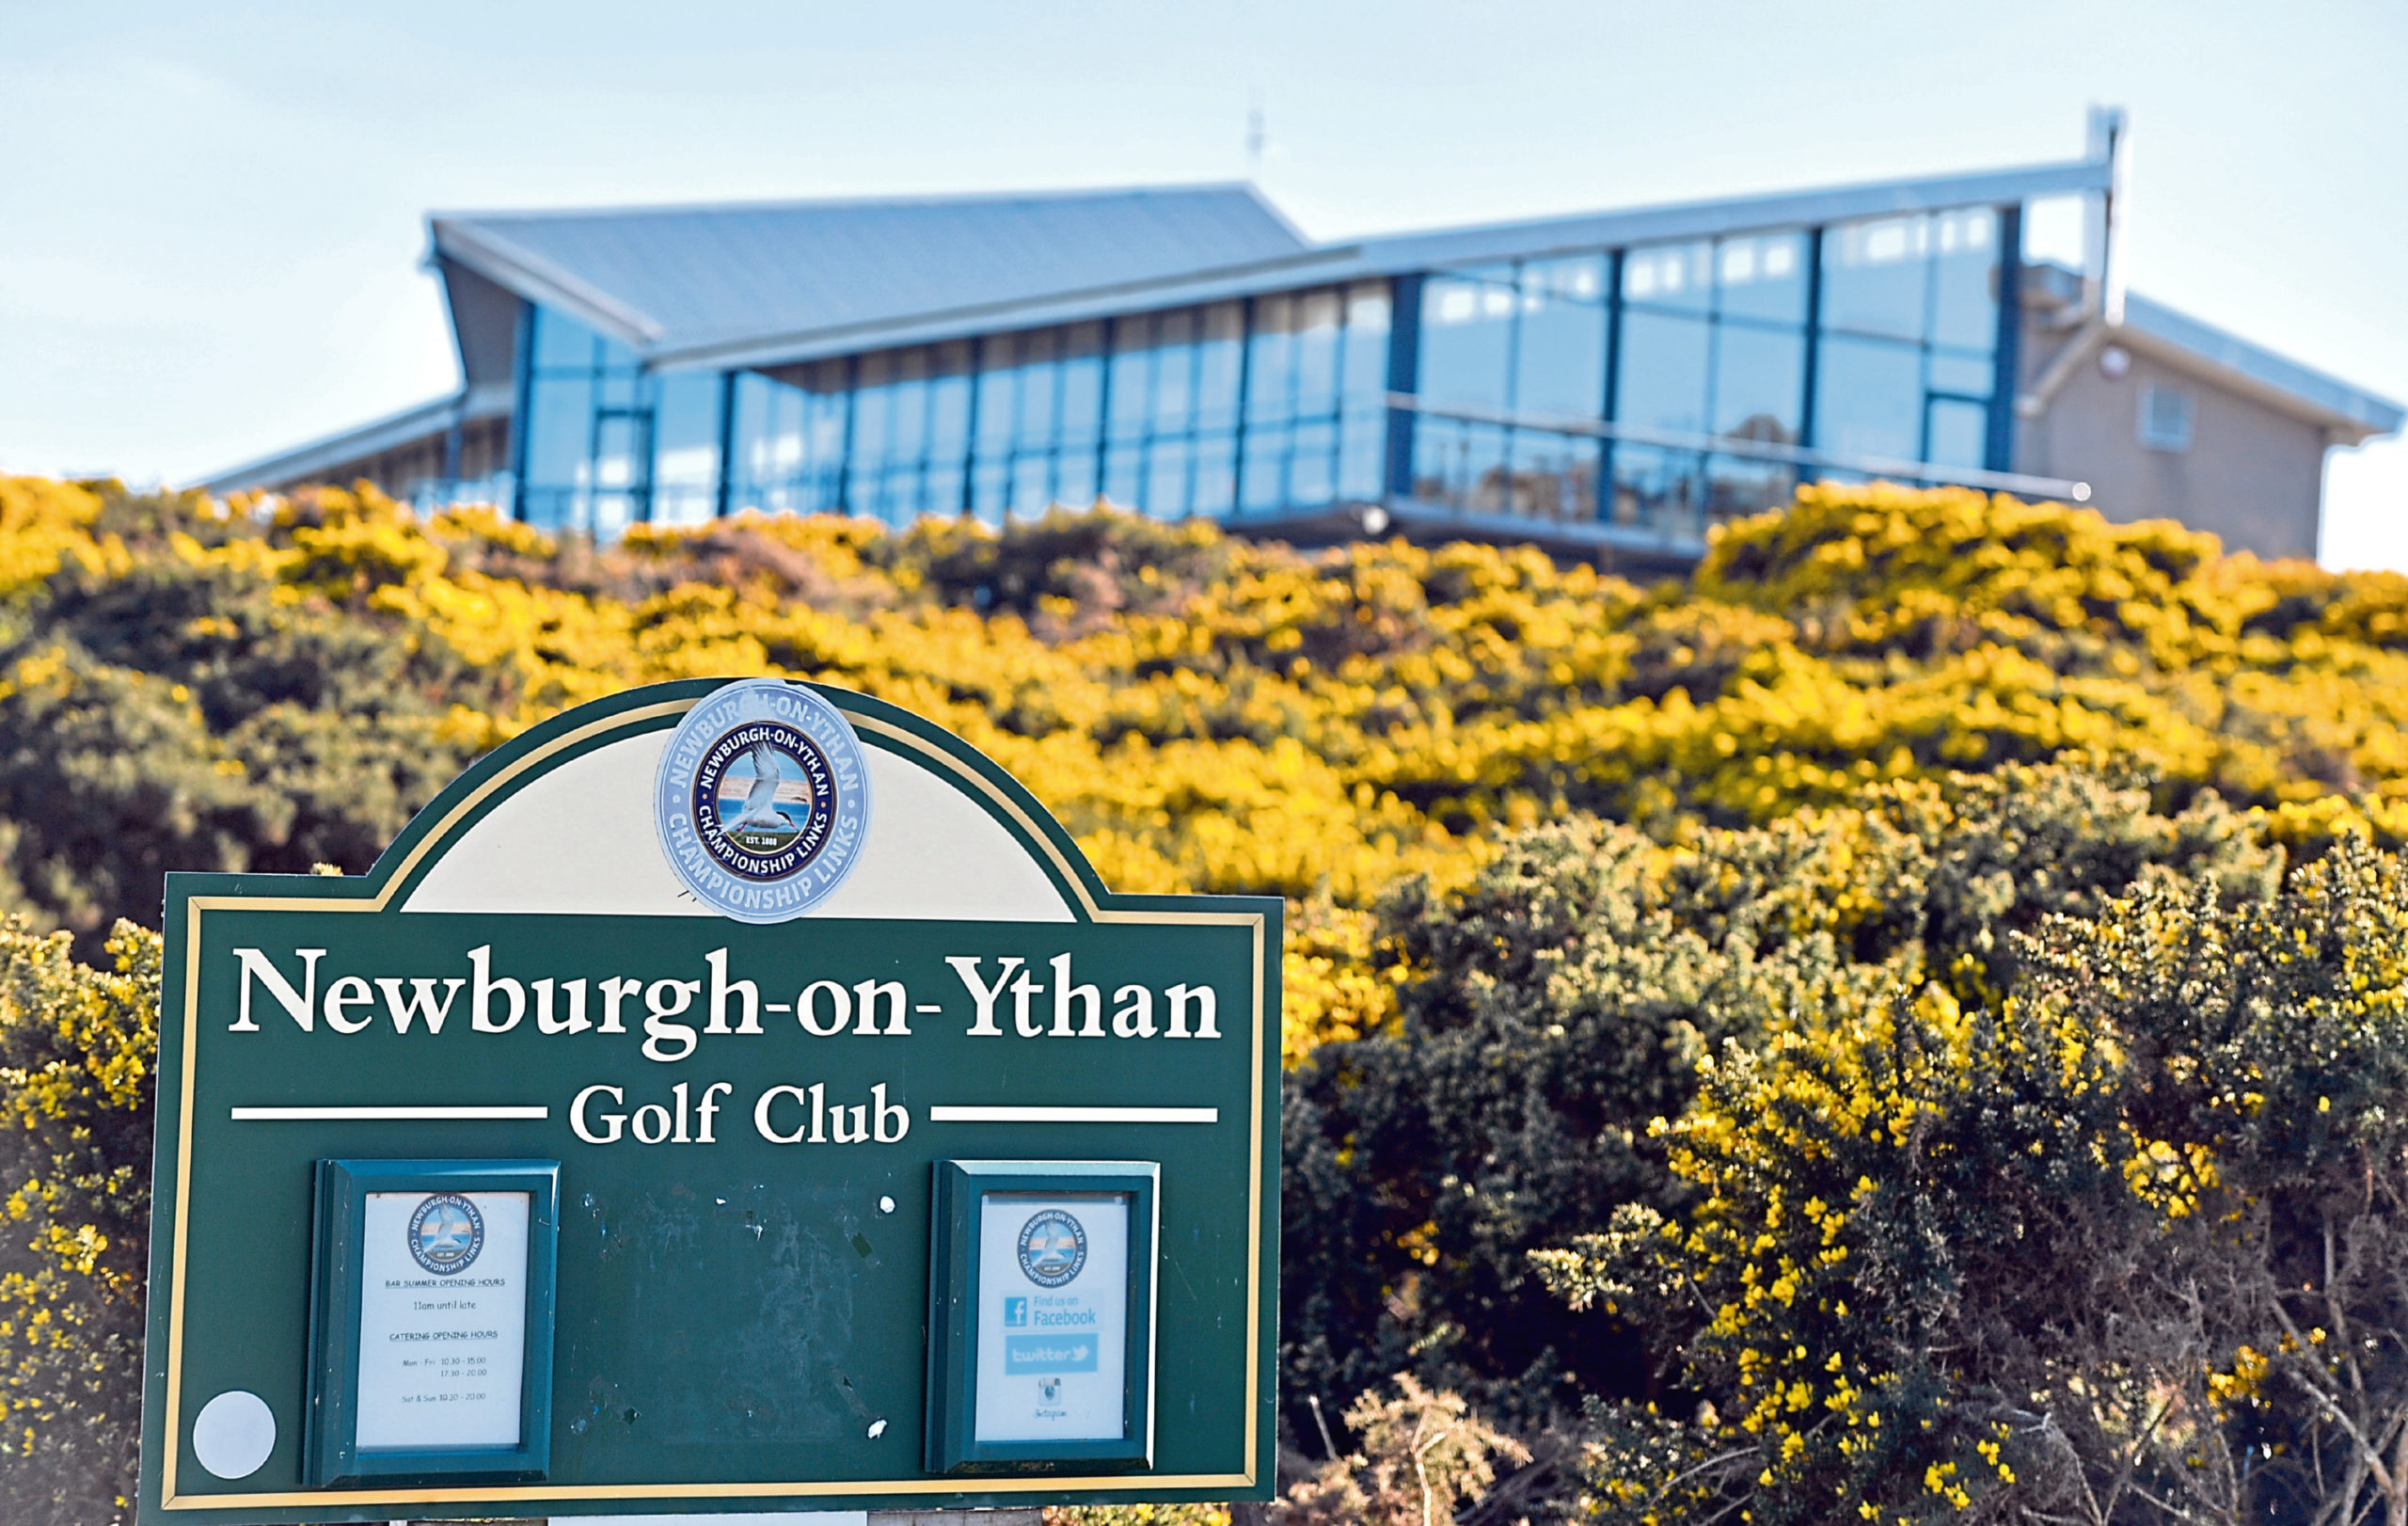 Newburgh-On-Ythan golf club have submitted a licensing application for an outdoor drinking area